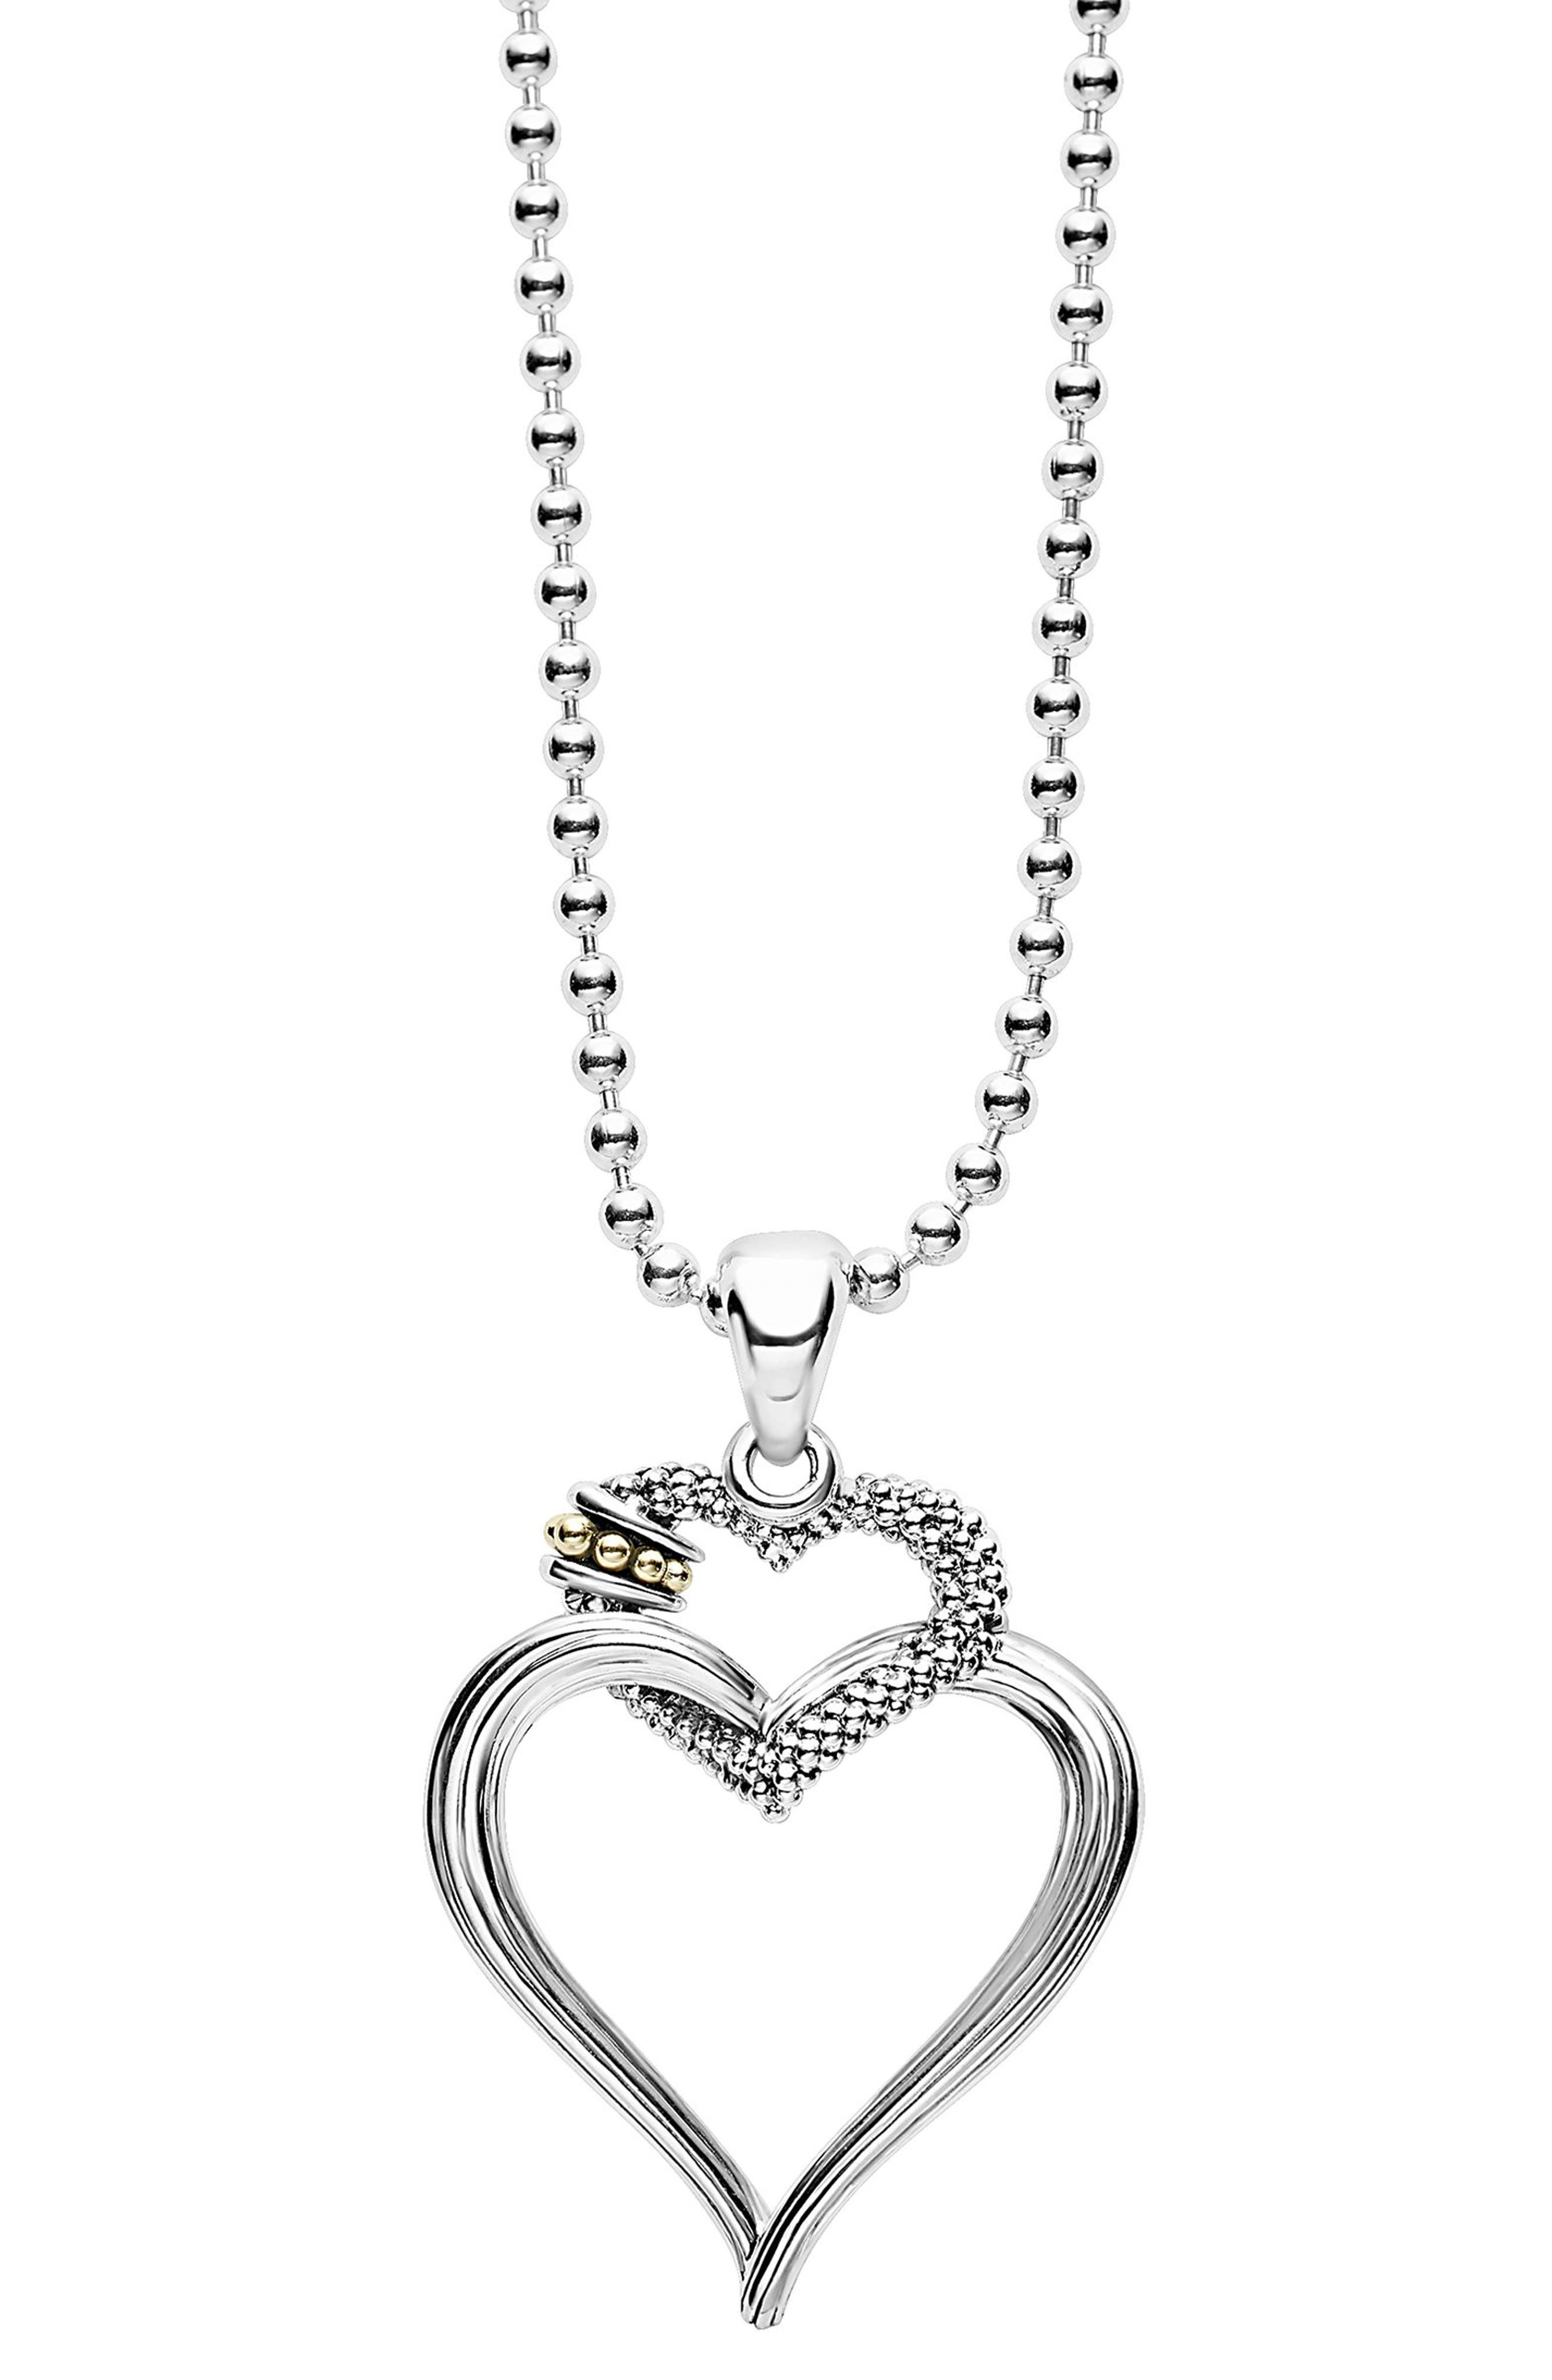 Beloved Heart Pendant Necklace,                             Main thumbnail 1, color,                             040